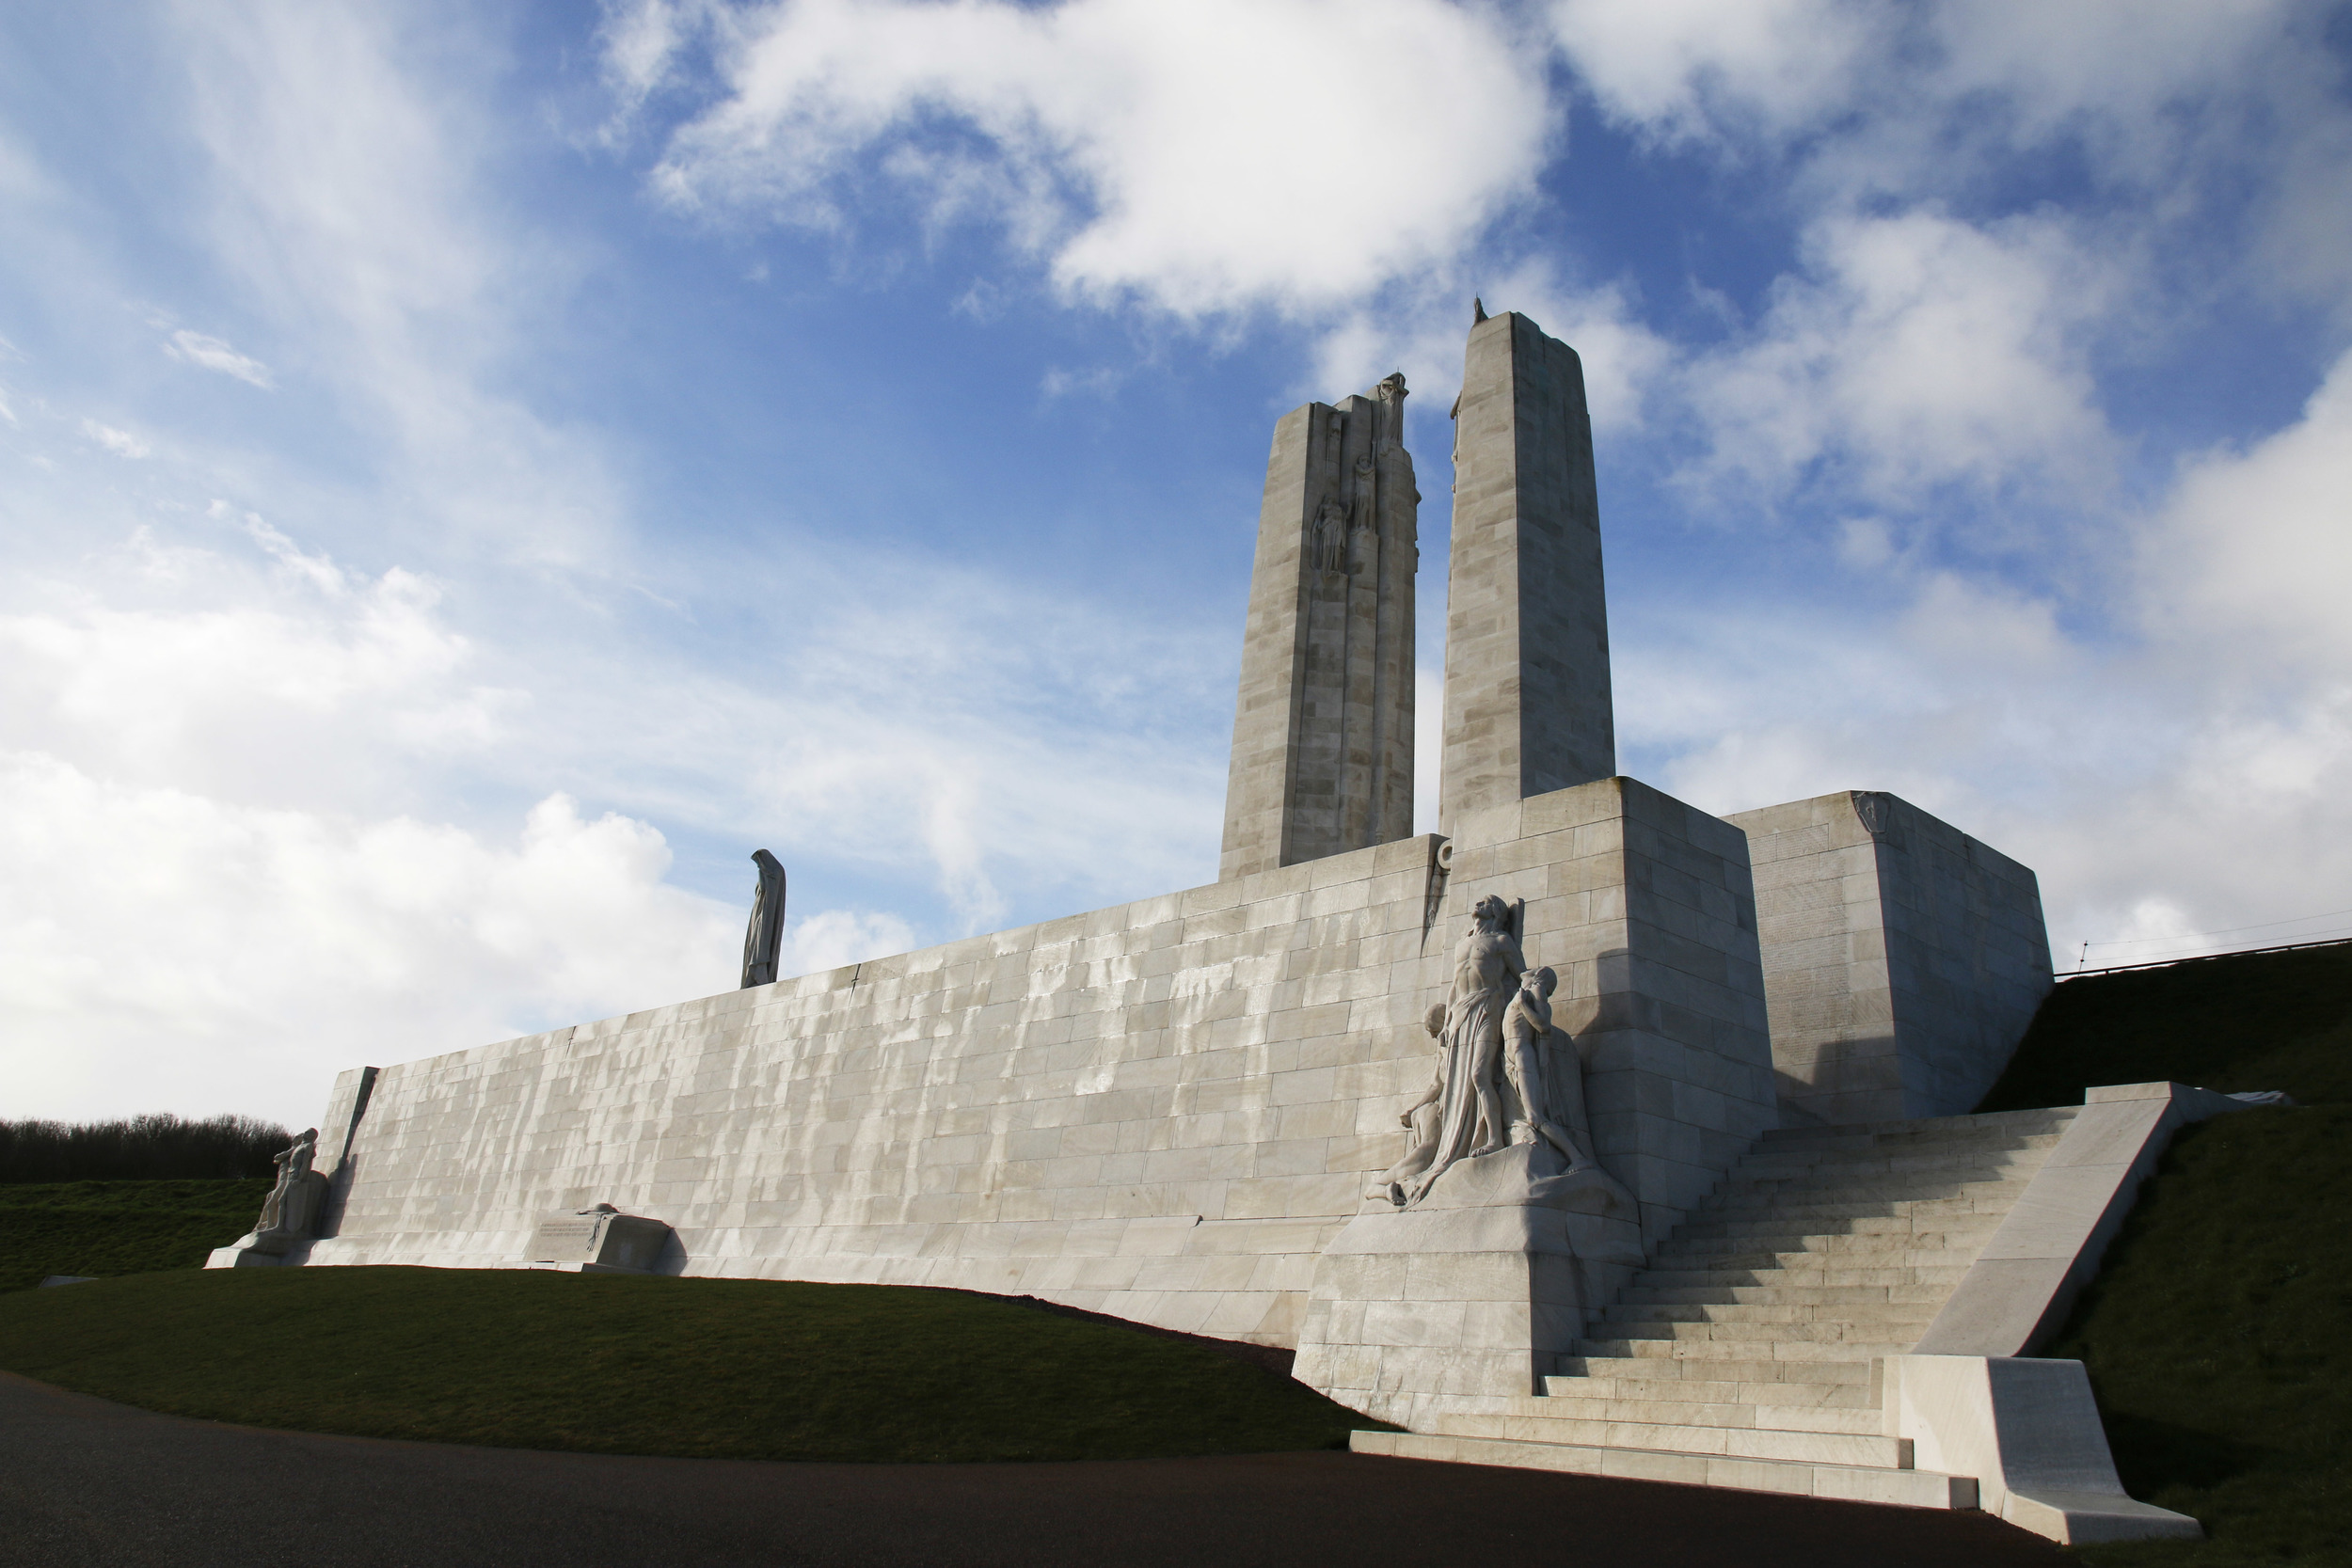 Vimy Ridge memorial. The names of the fallen are all inscribed on the wall.